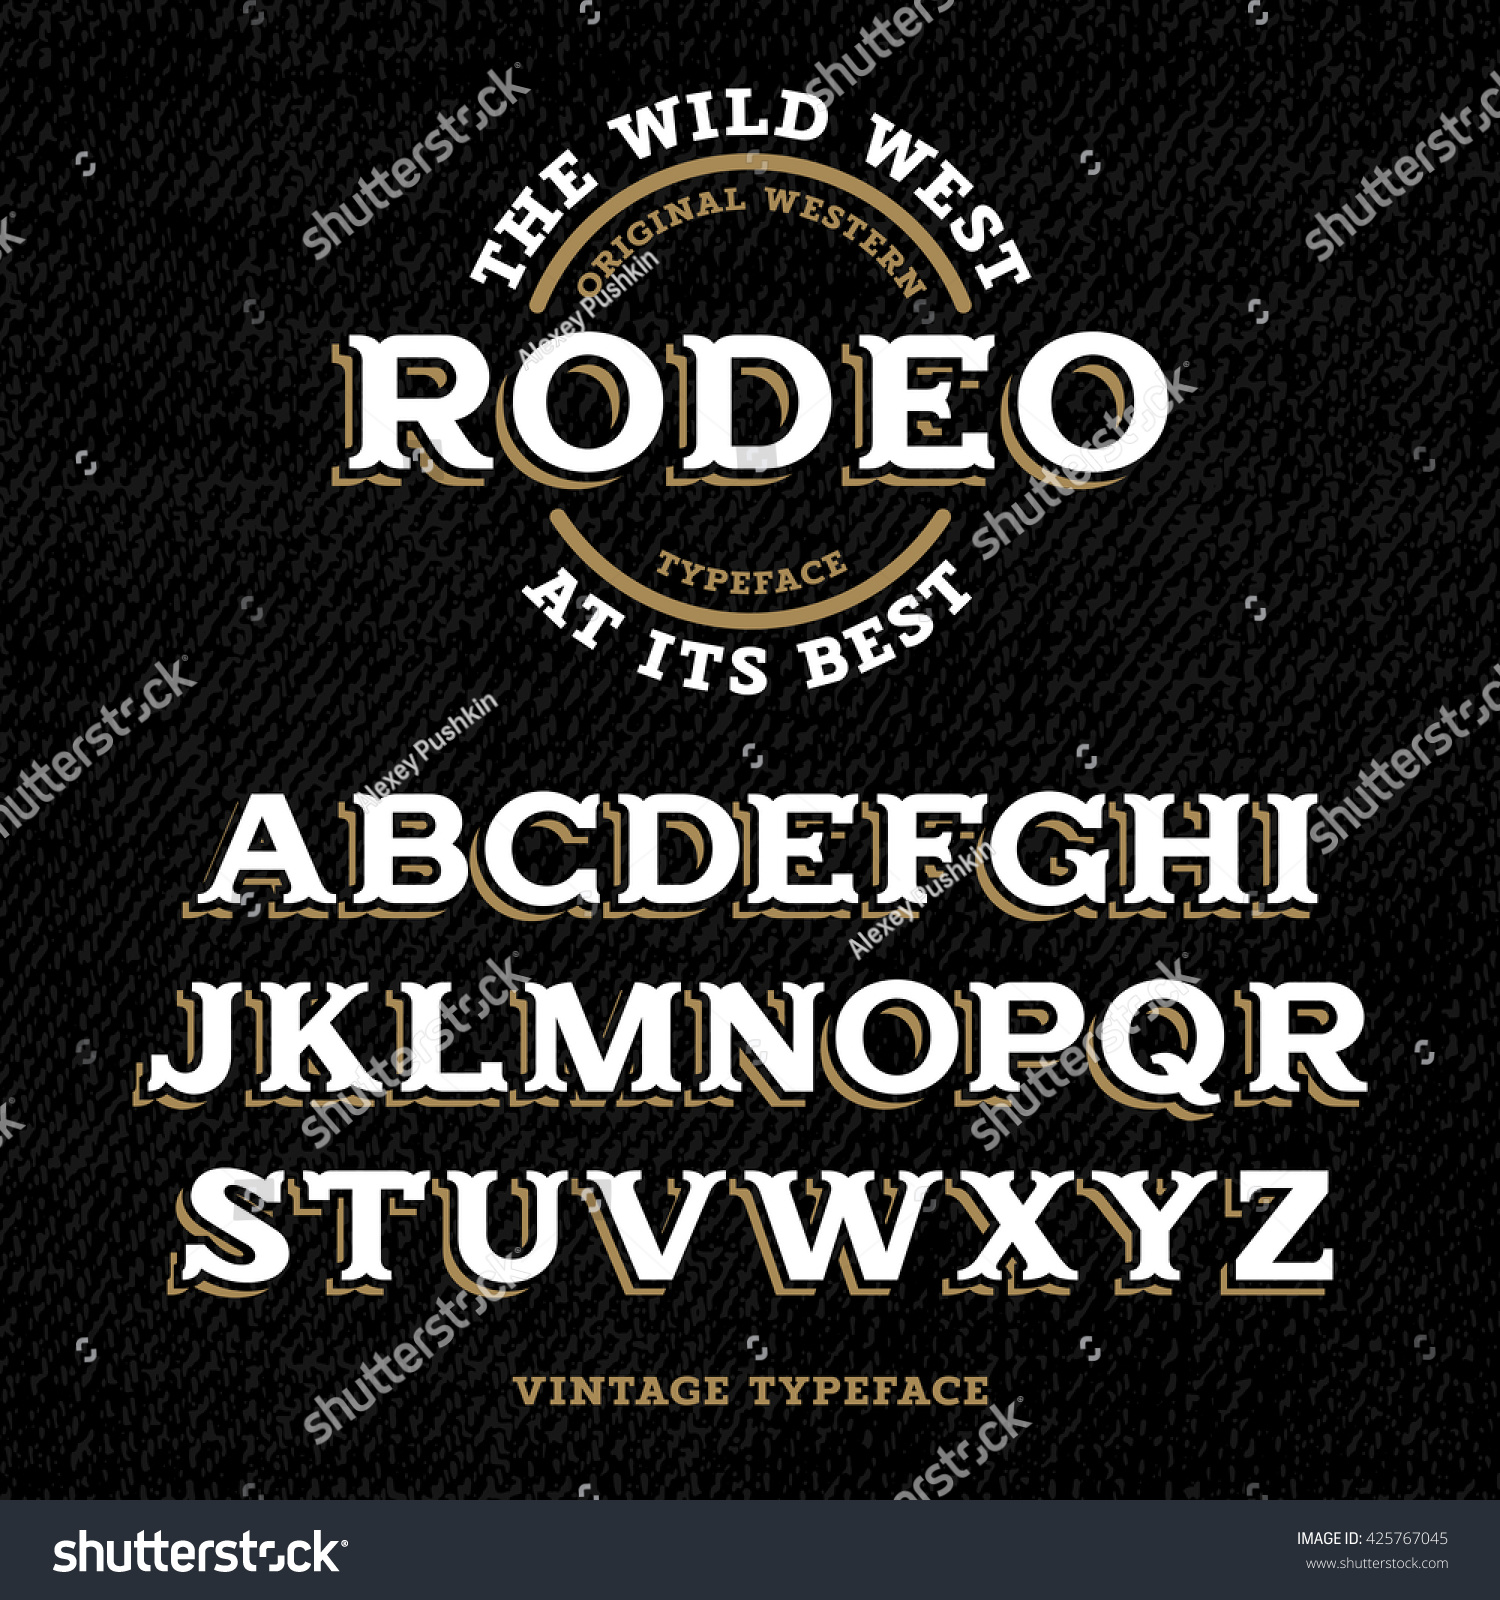 670774347 Wild West typeface   Retro alphabet in western style   Slab Serif type  letters on a